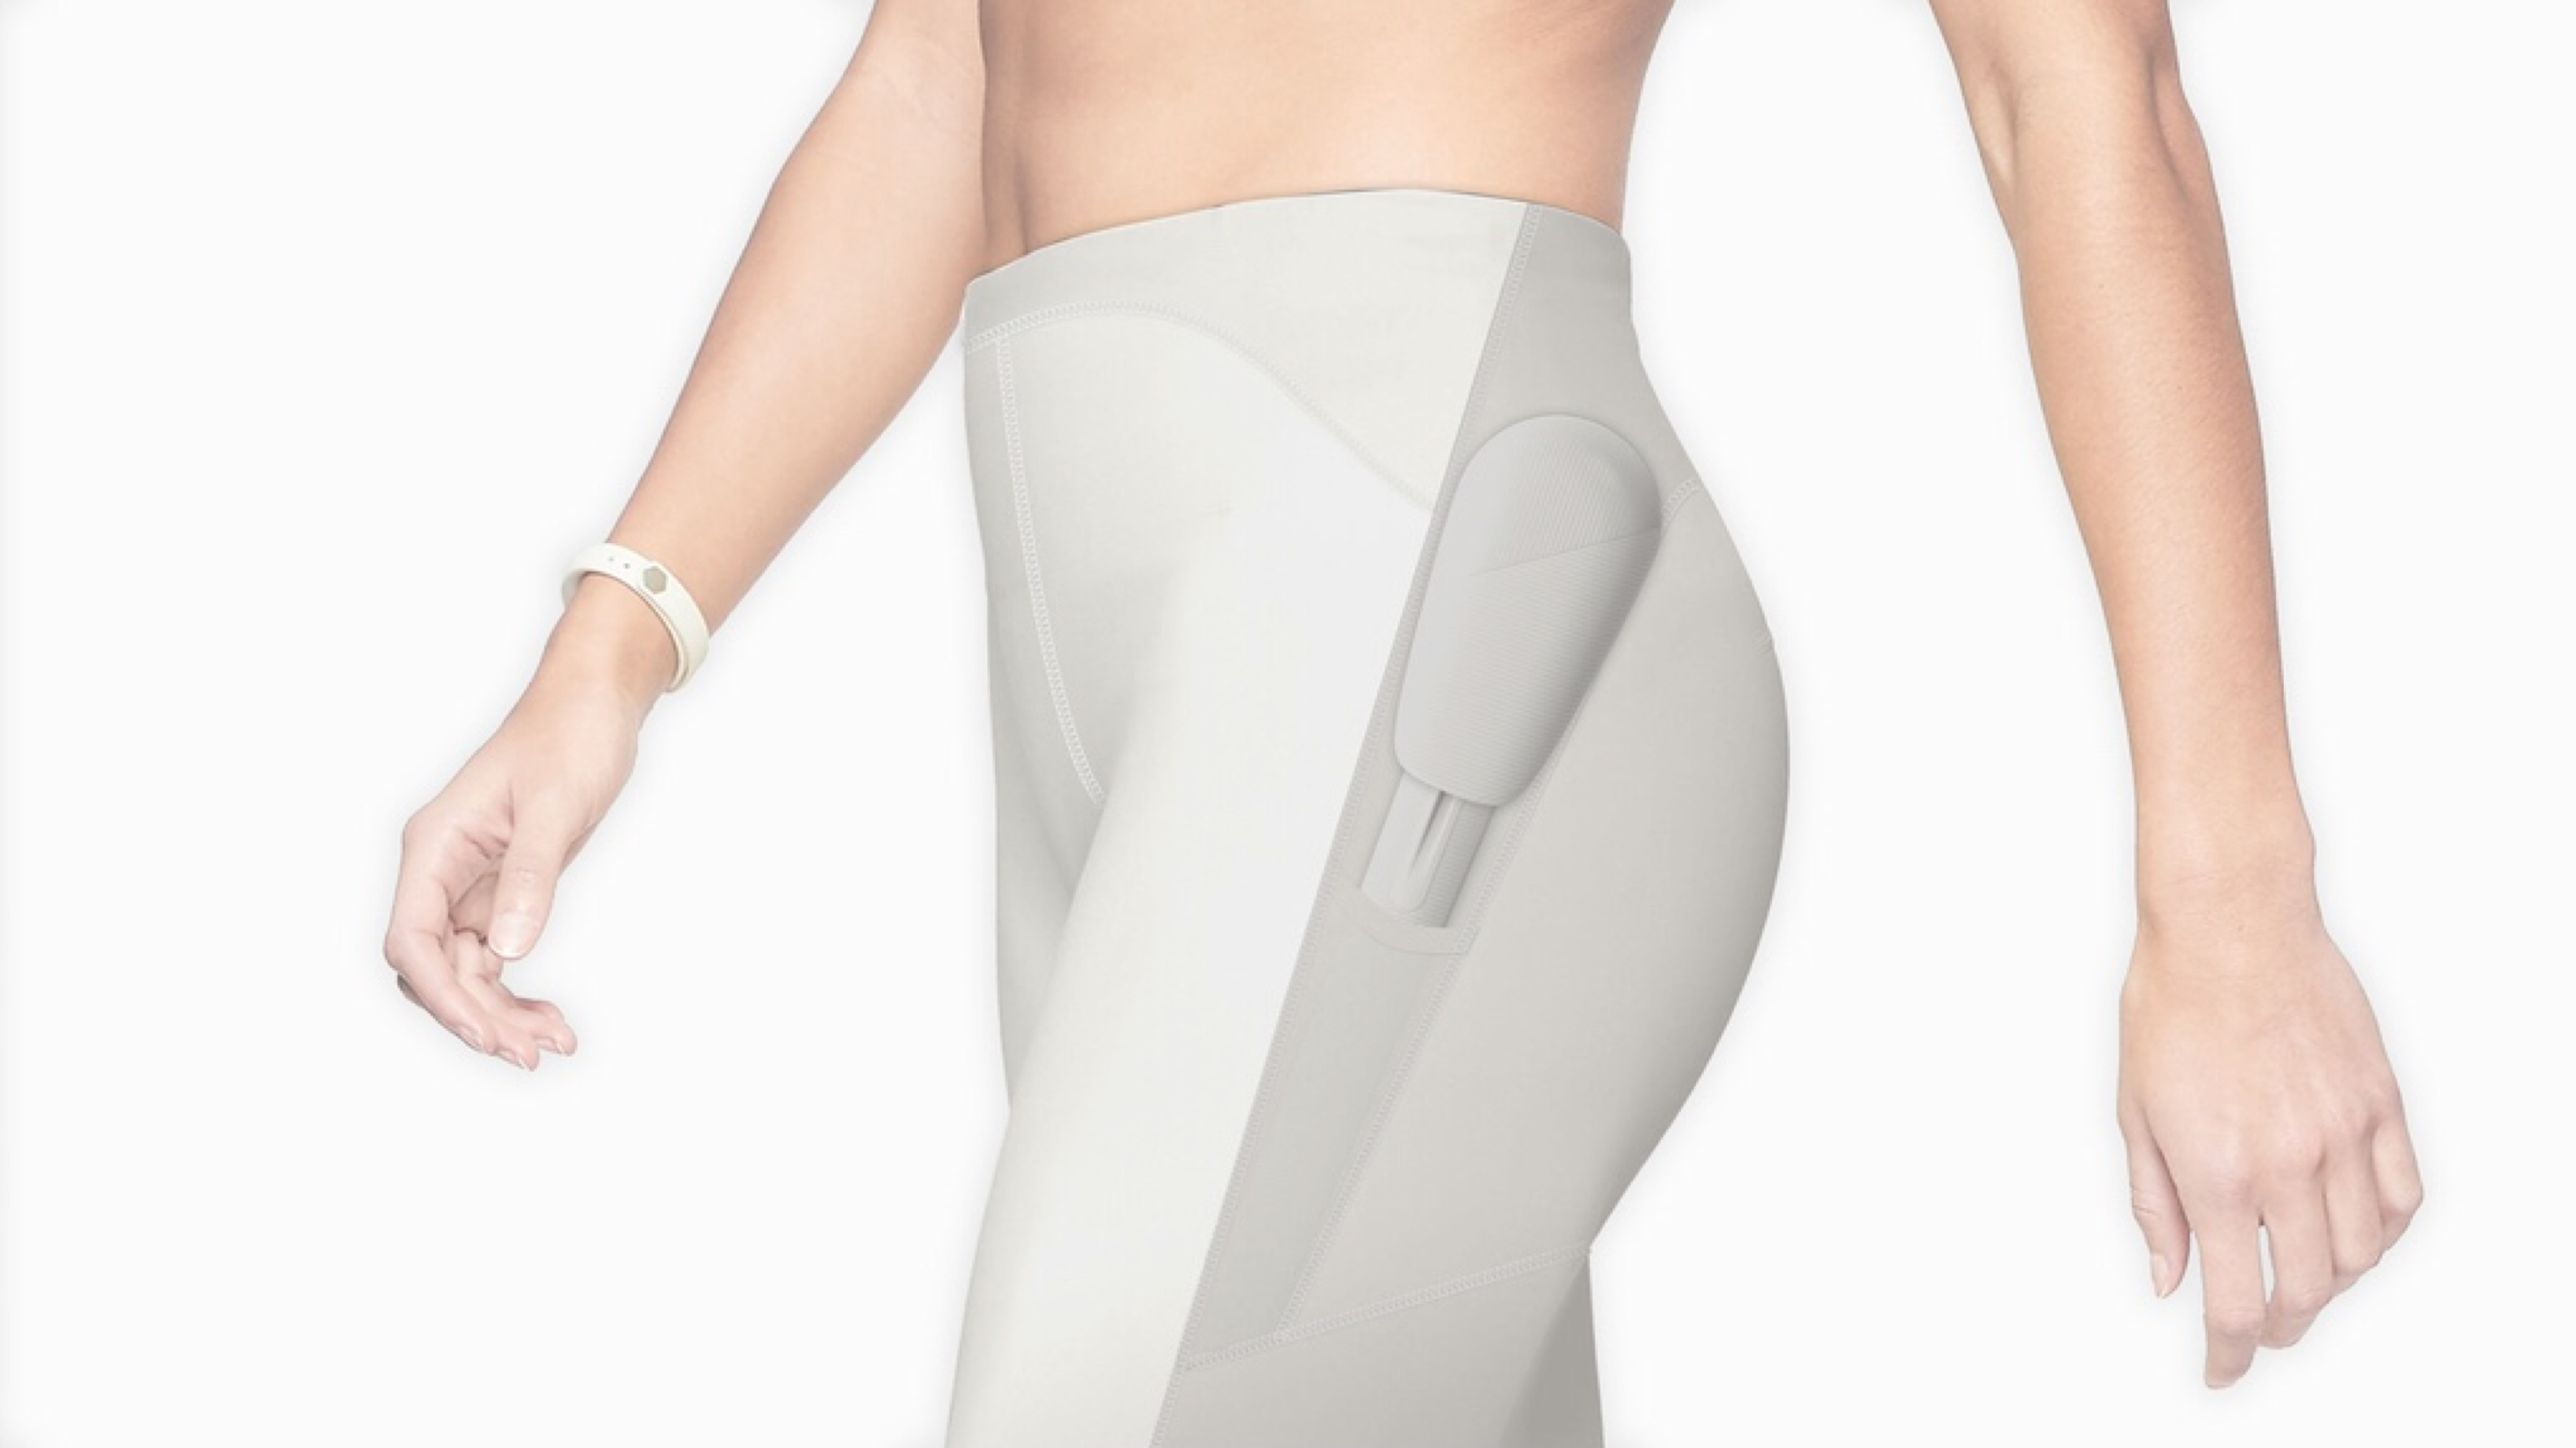 TAU is developing a compression pant capable of resistance training, thanks to detachable pods.